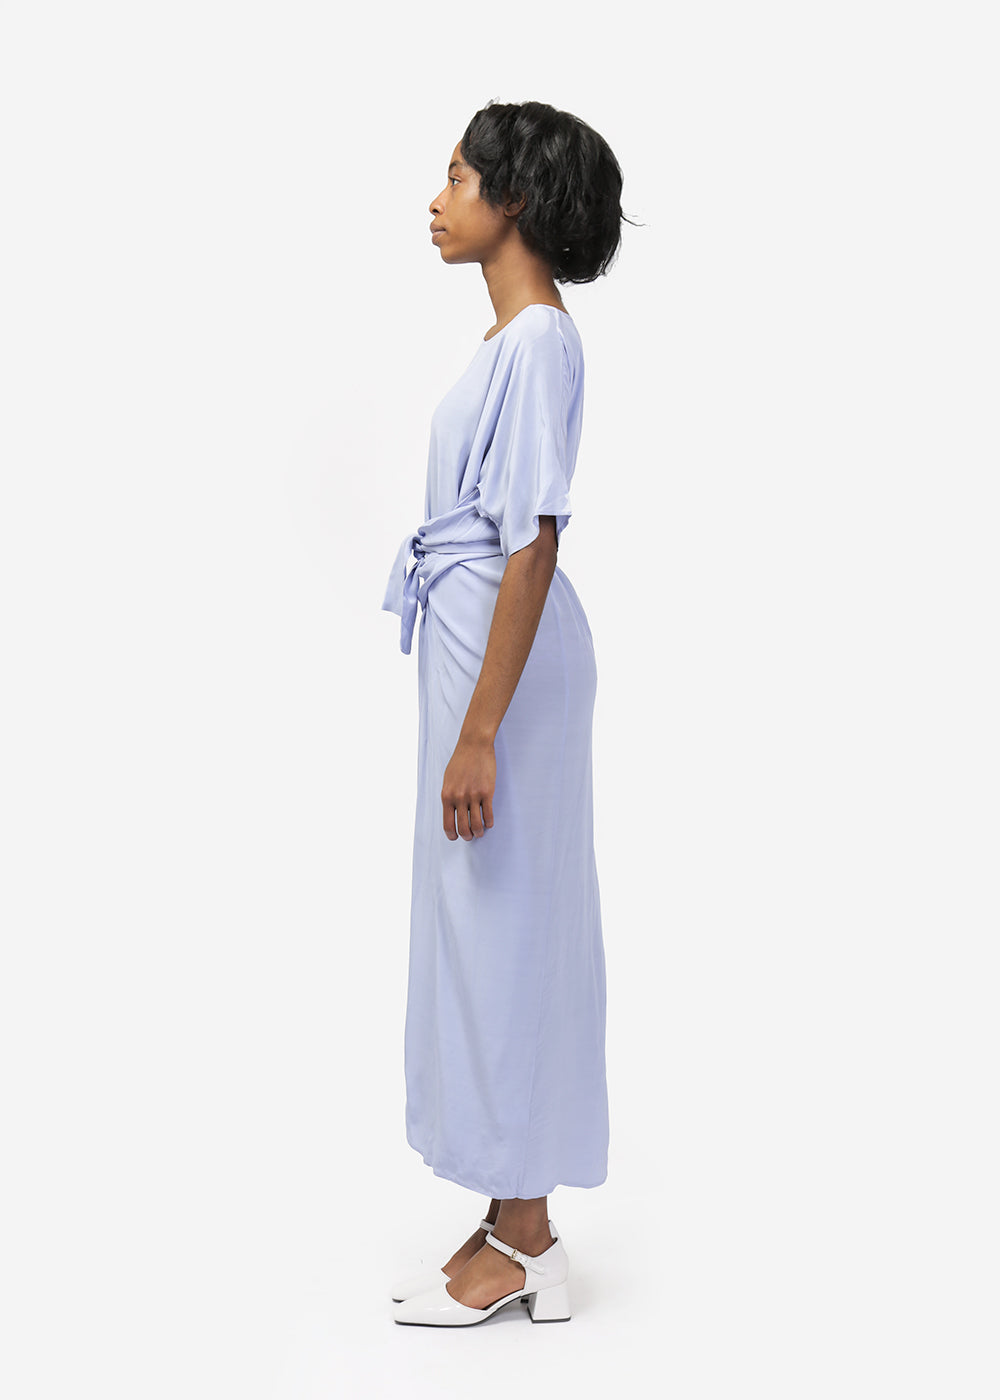 Shaina Mote Gia Dress — Shop sustainable fashion and slow fashion at New Classics Studios